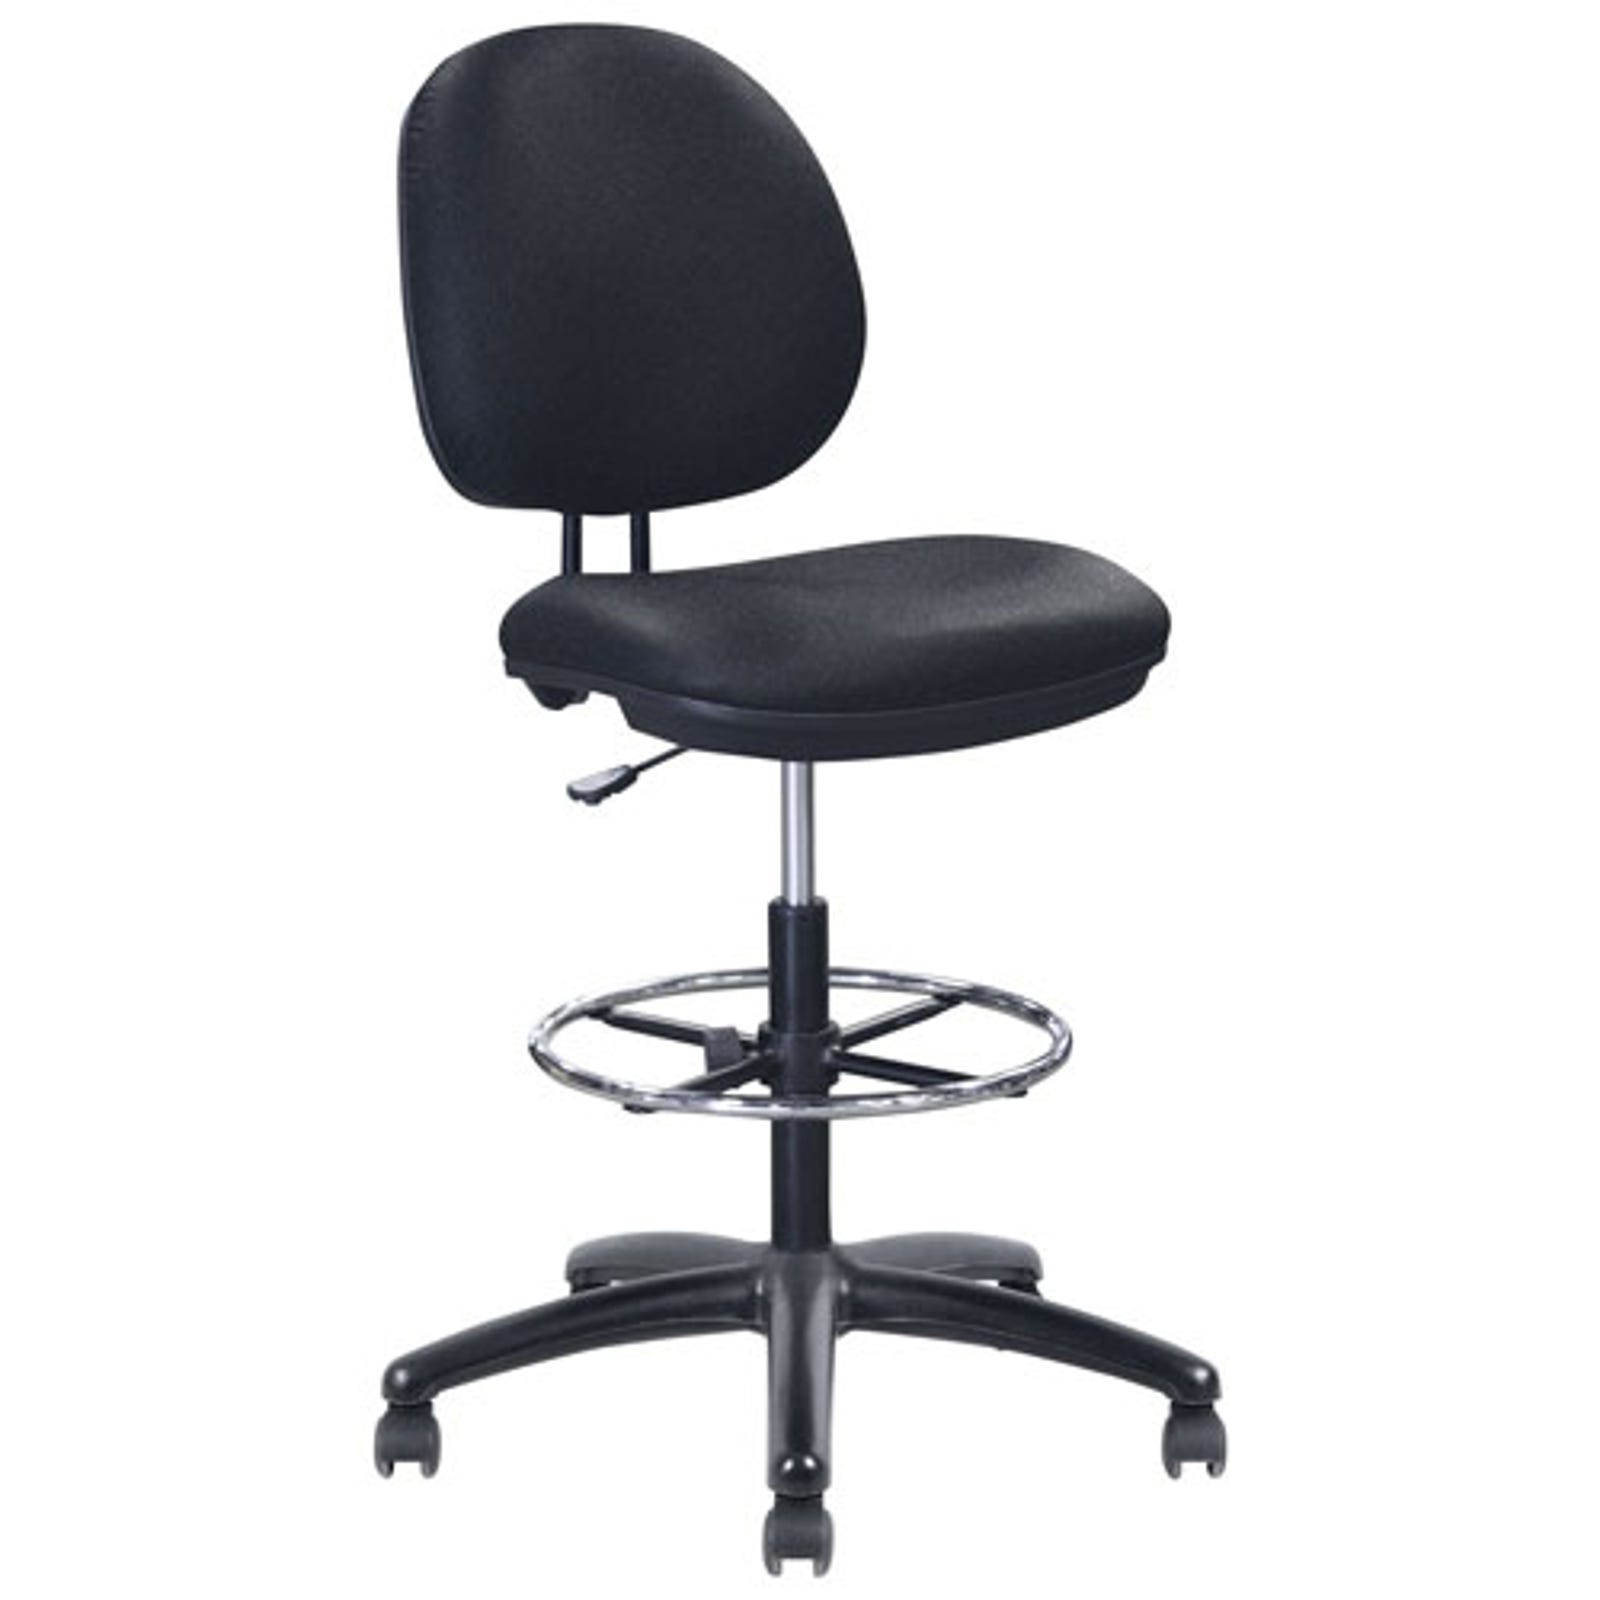 Office Chairs: Ergonomic, Computer, Desk & More | Best Buy